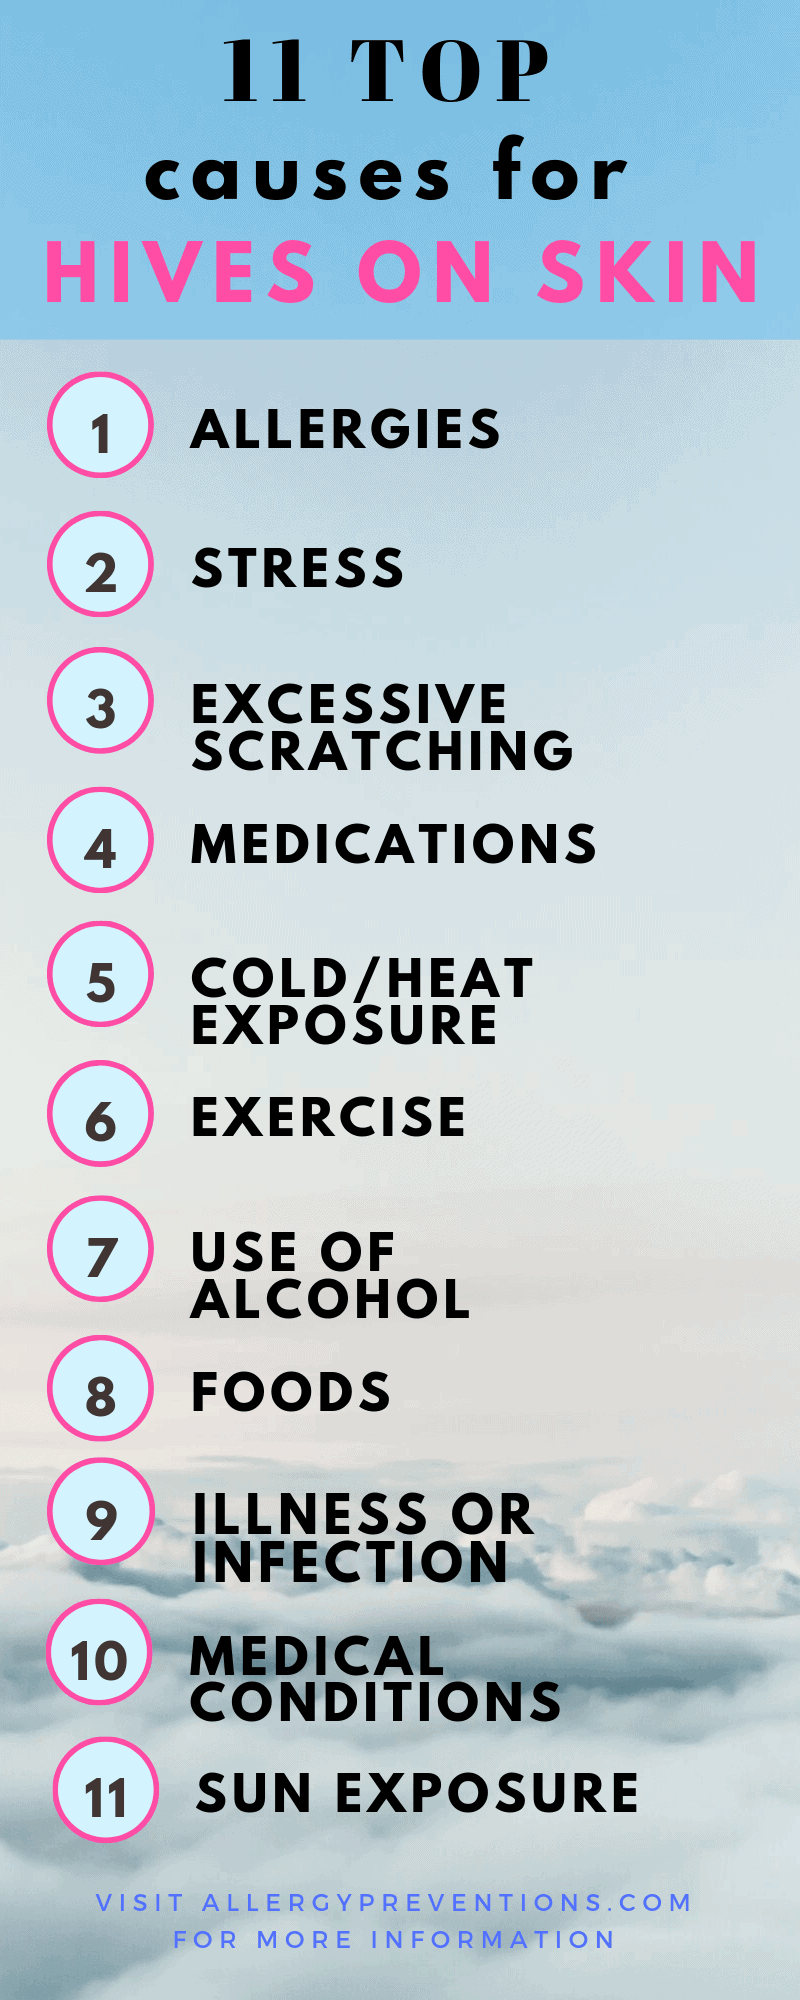 Top 11 causes for hives on skin infographic visual